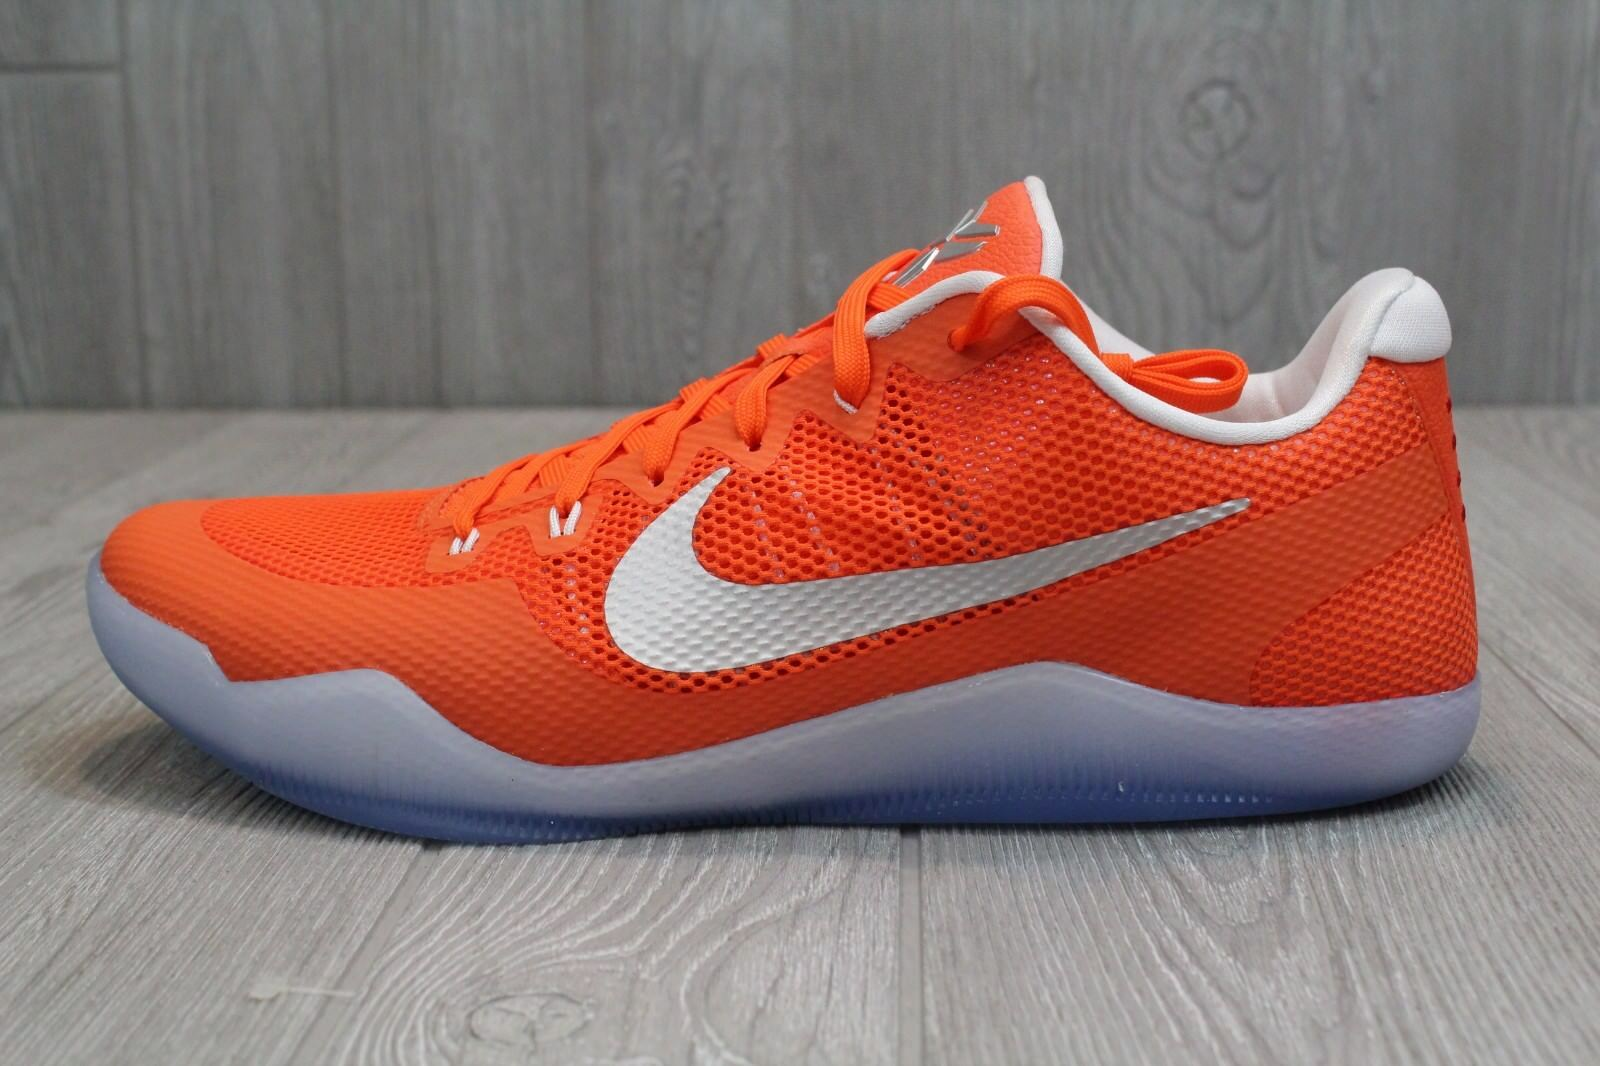 22 New Mens Nike Kobe XI 11 TB Basketball shoes orange White 9 - 15 856485-883